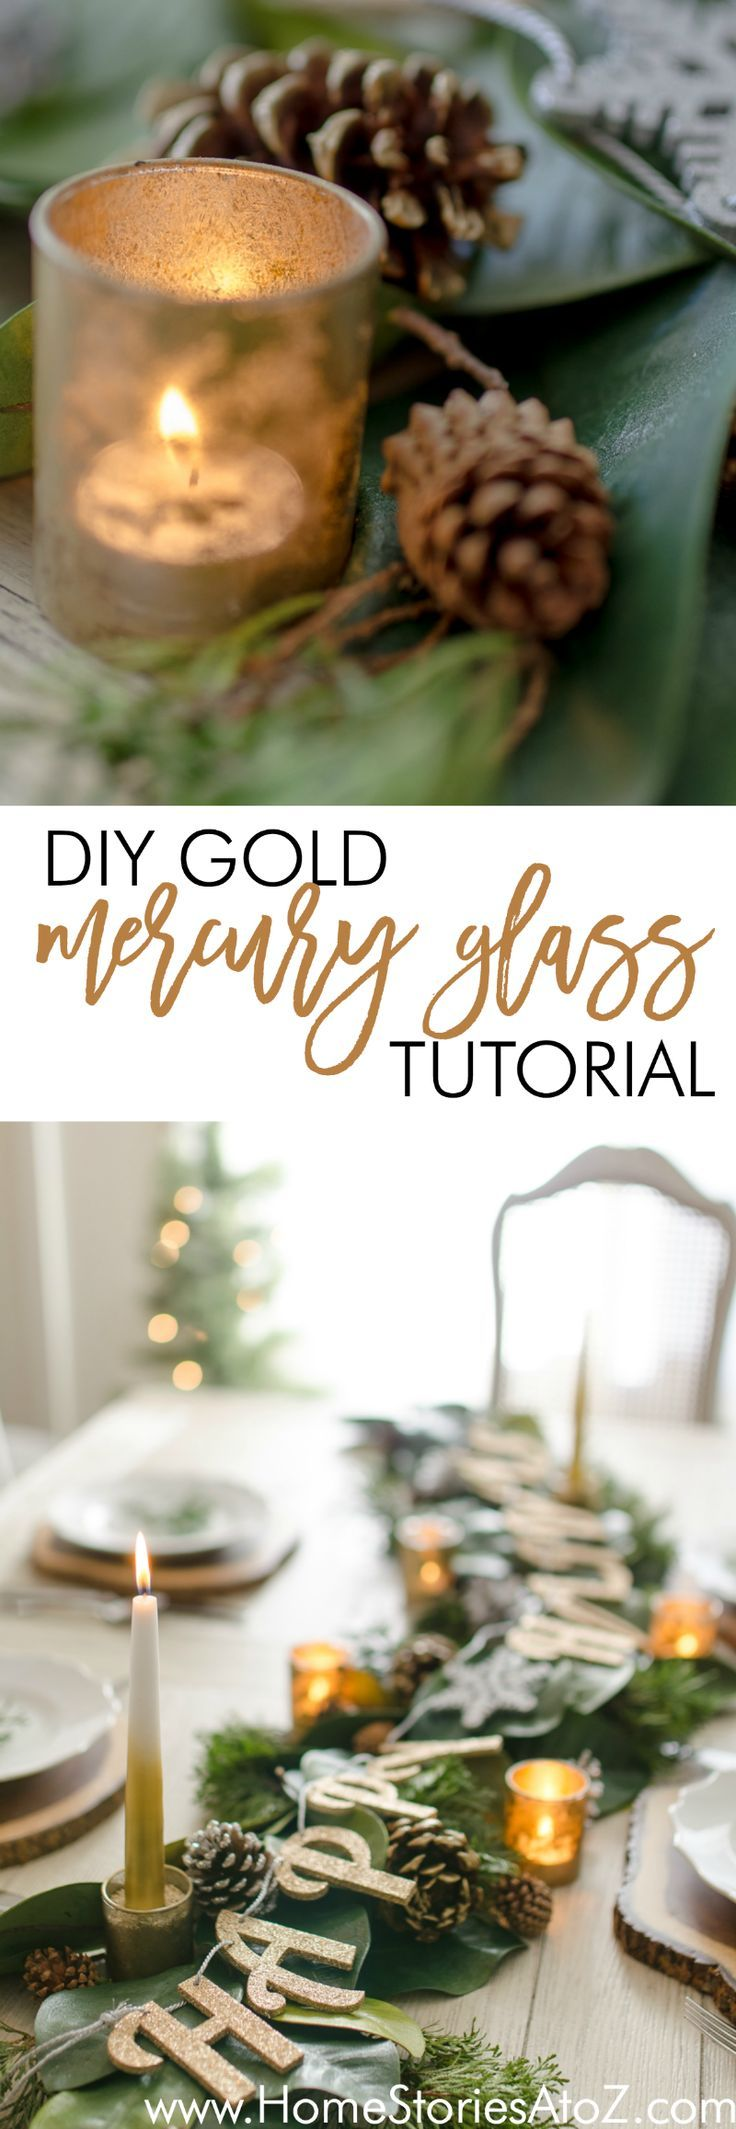 DIY Mercury Glass Tutorial - Home Stories A to Z